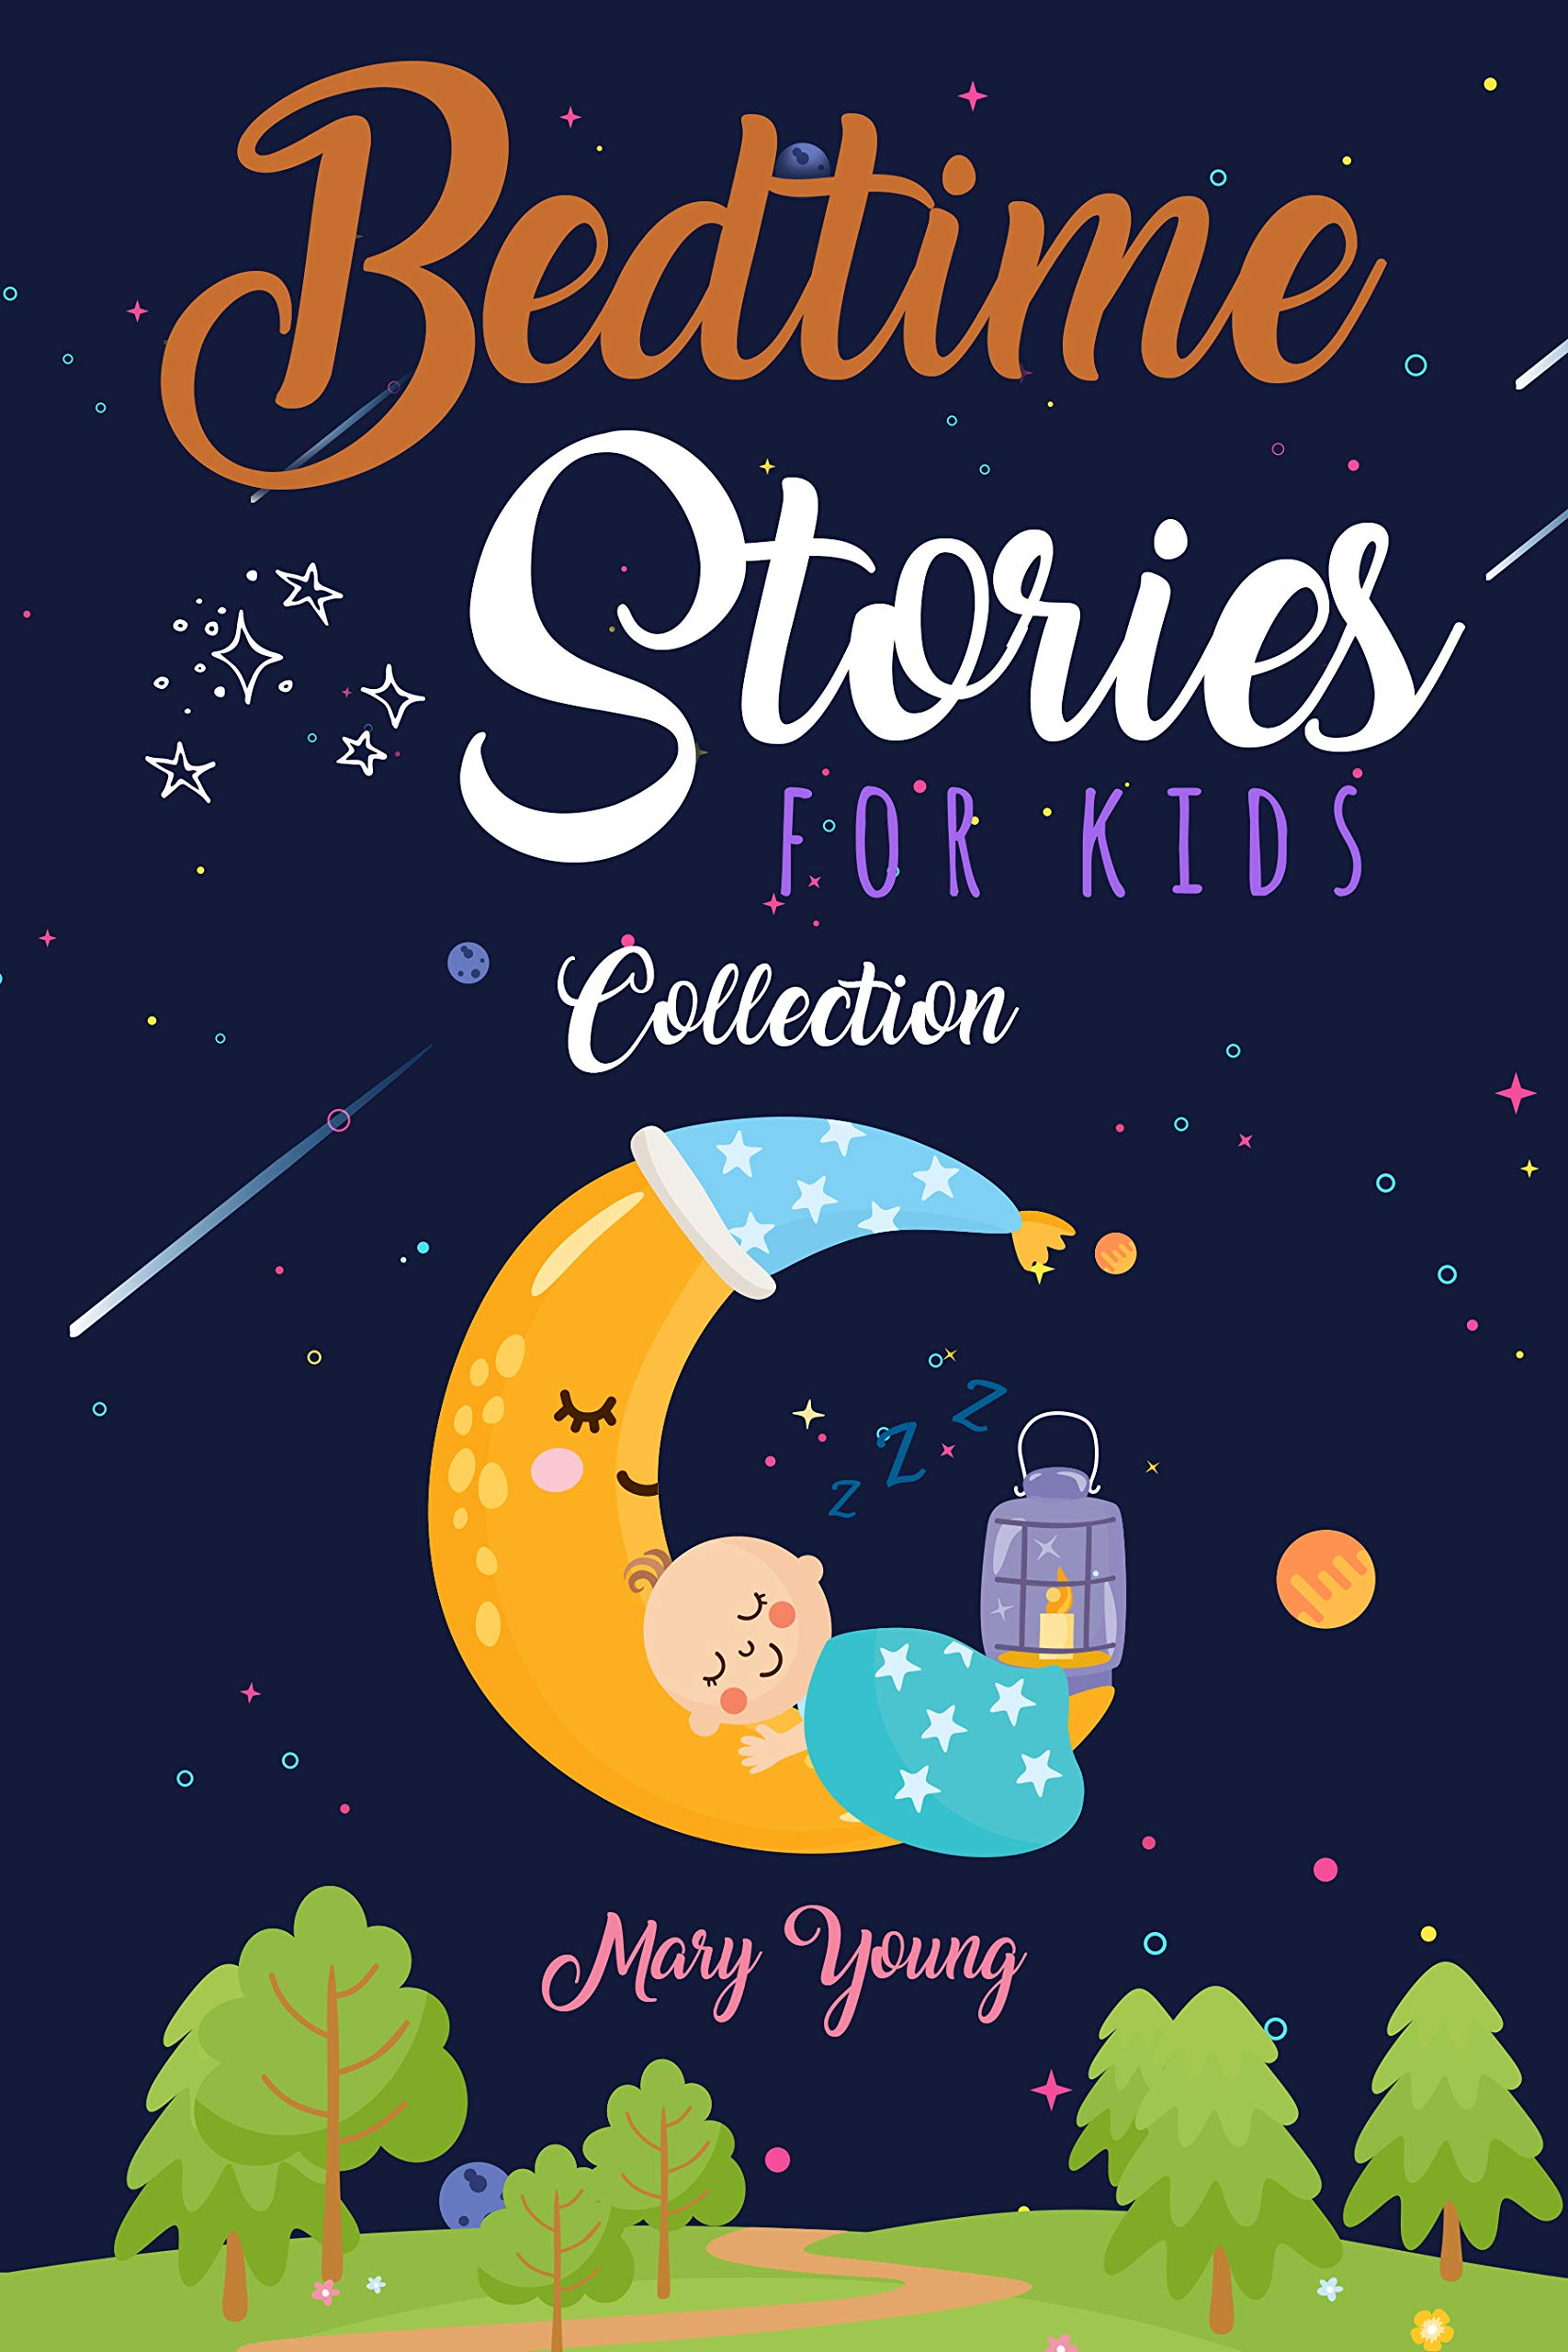 Bedtime stories for kids collection: The Complete Collection of Entertaining Tales for Children. The Best Help to Get Rid of Their Anxiety and to Make Them Fall in a Peaceful sleep. (2 Books in one)